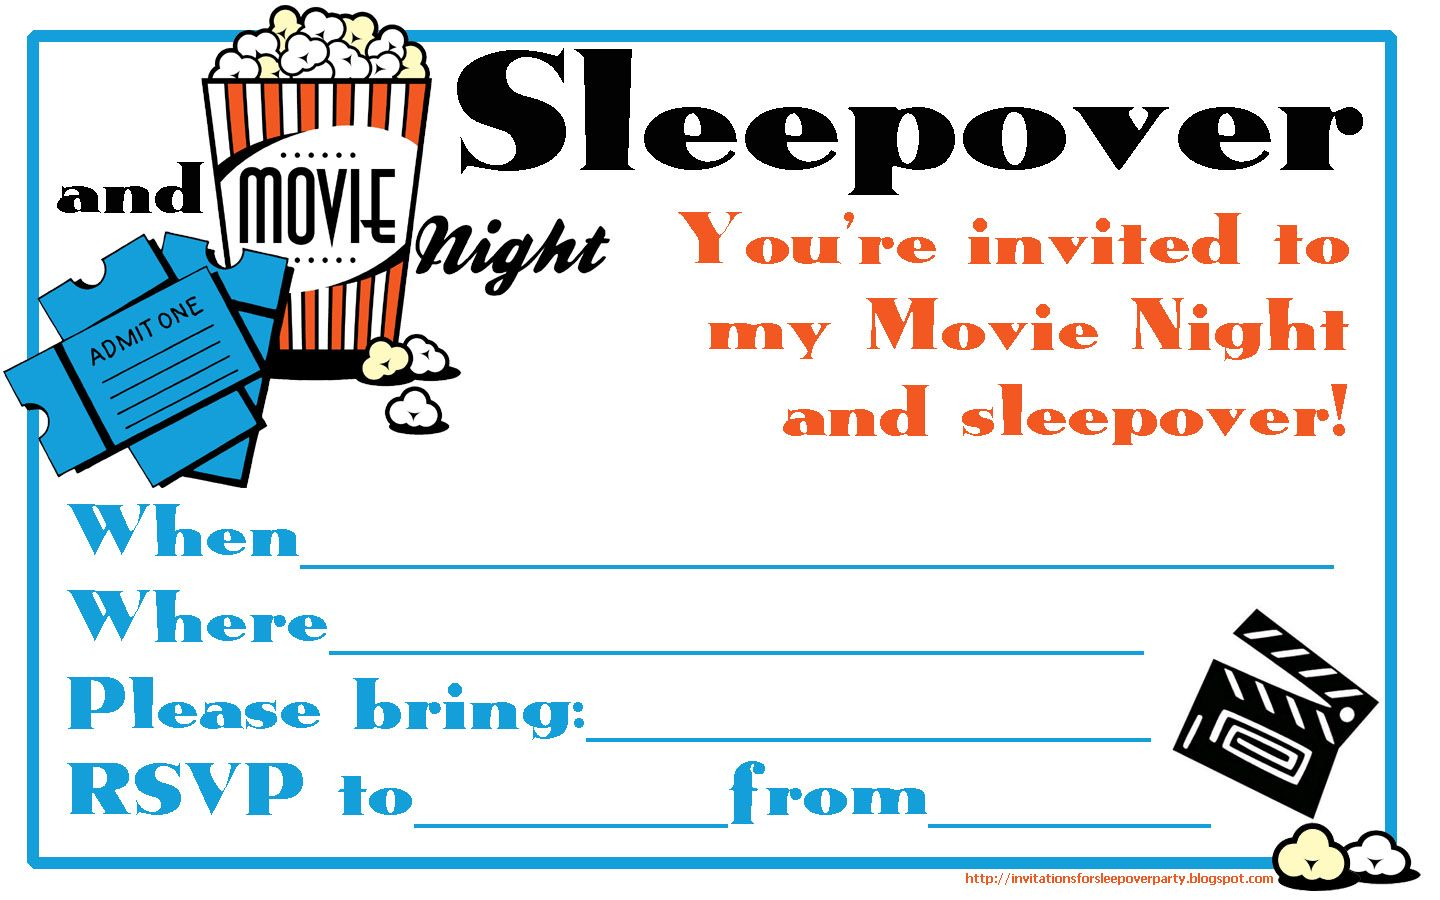 Fill the blanks on this movie night and sleepover invitation and